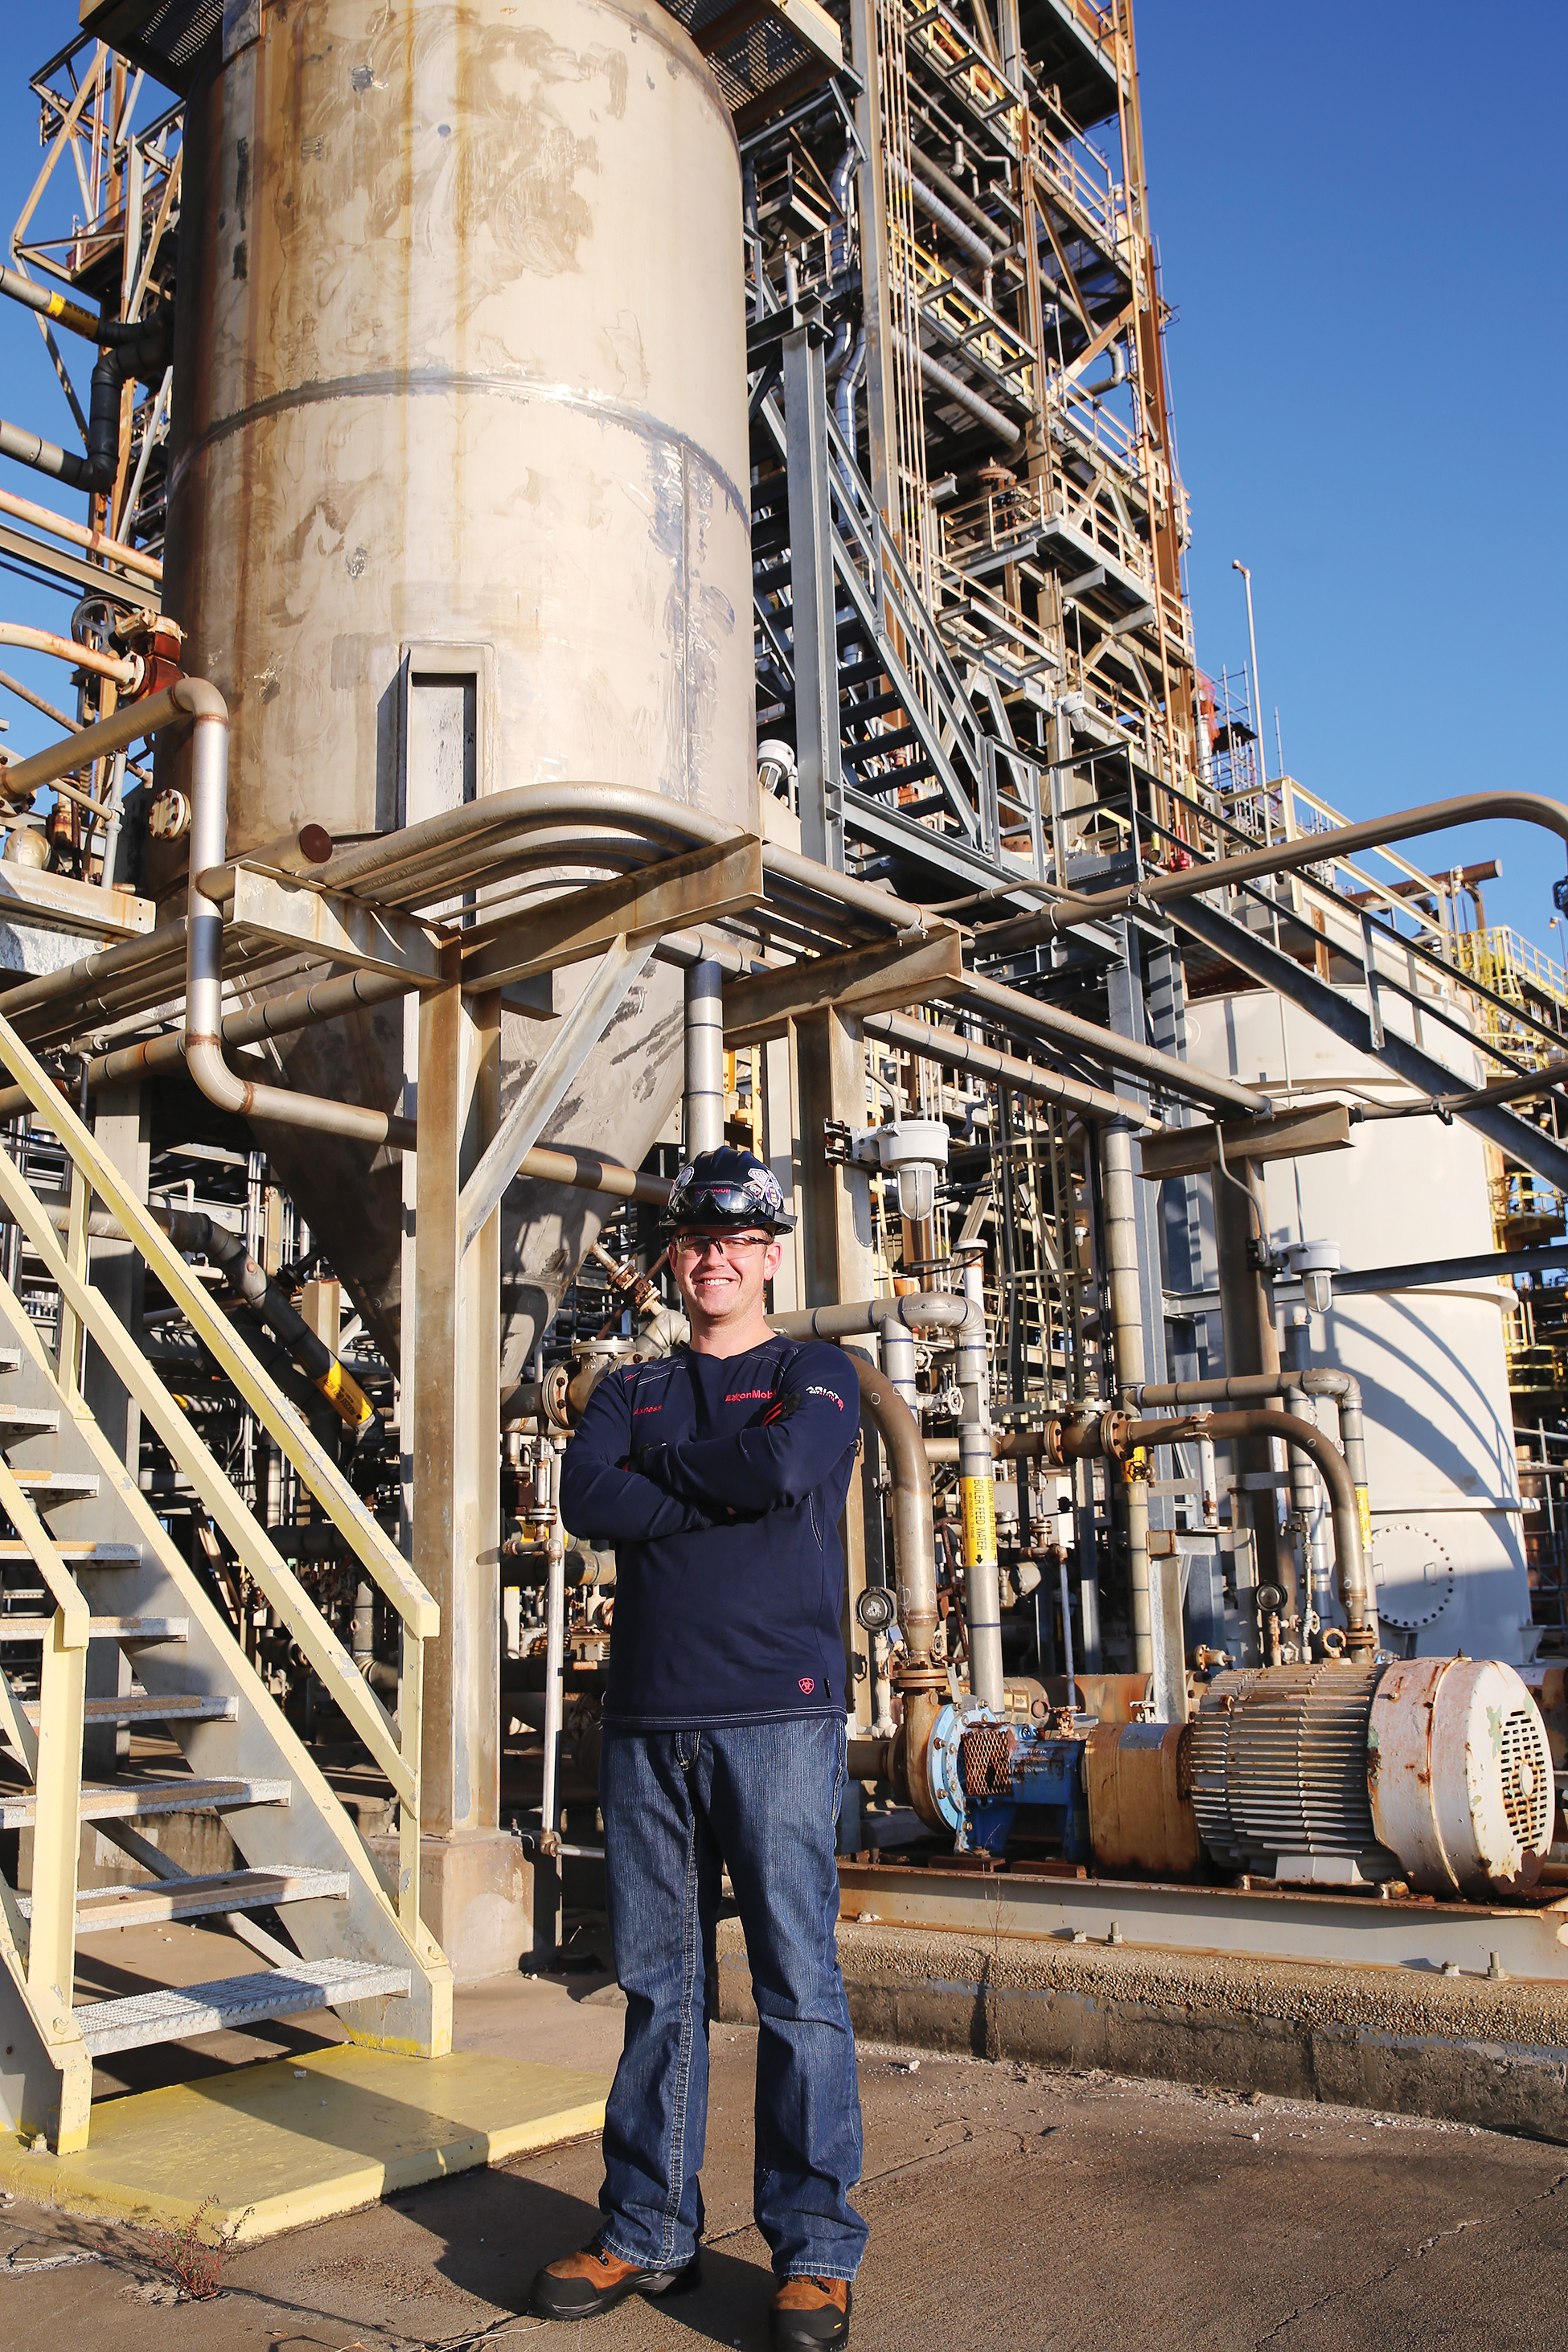 A man standing in an oil refinery.